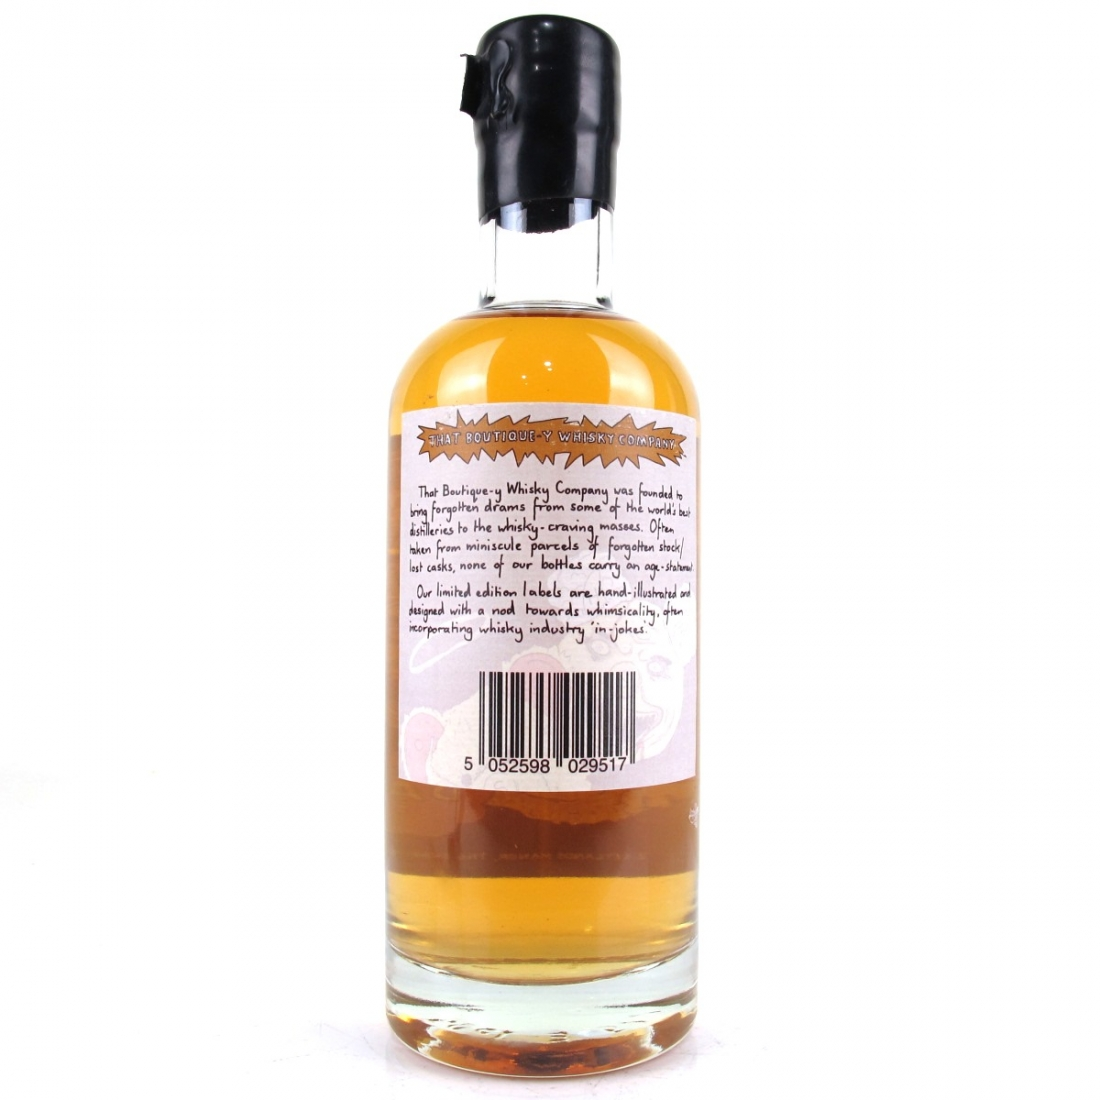 Dailuaine That Boutique-y Whisky Company Batch #1